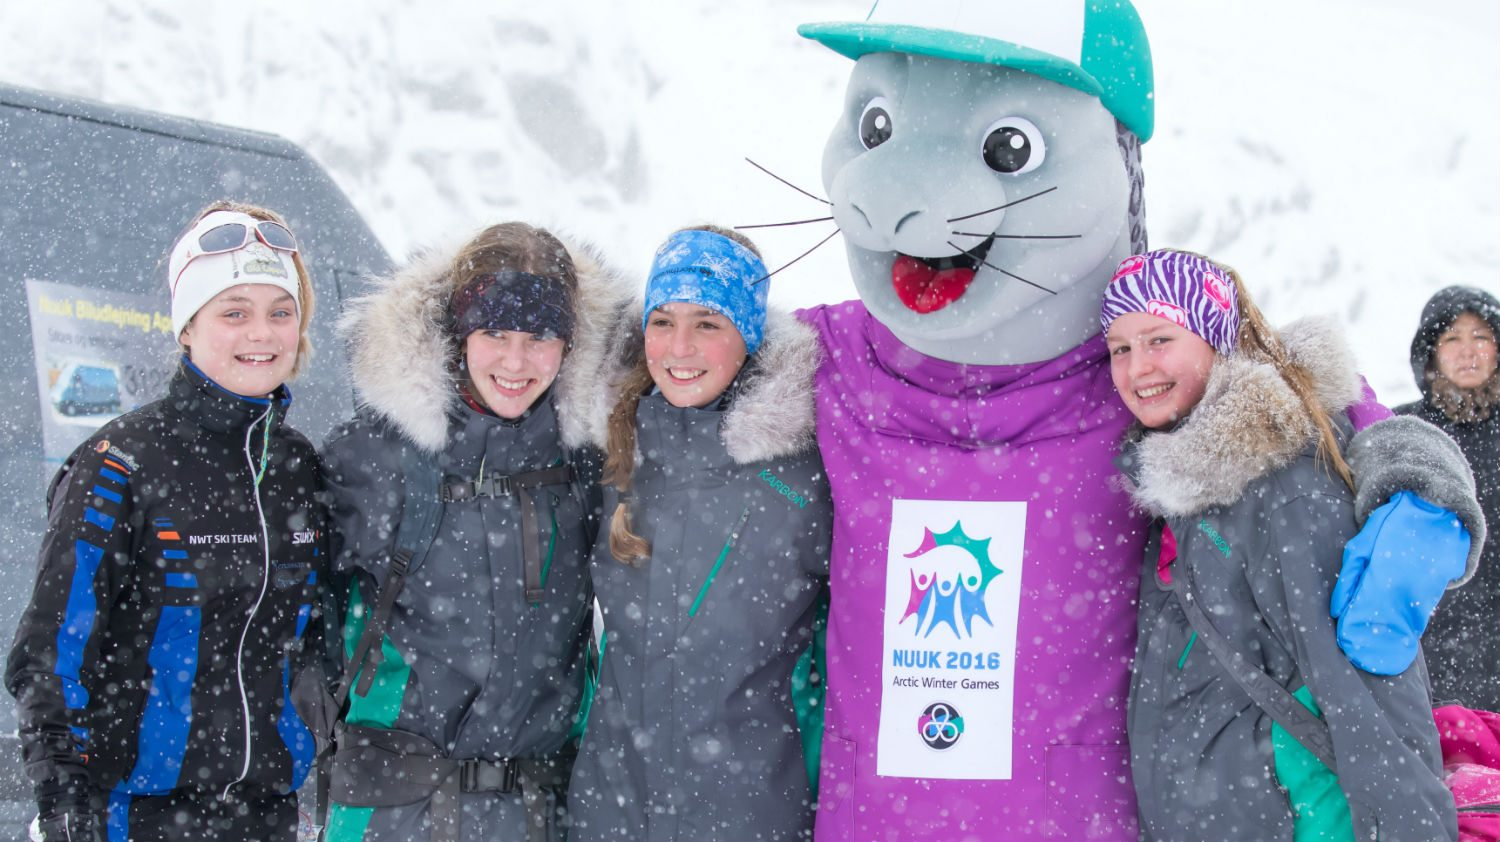 Skiers with mascot